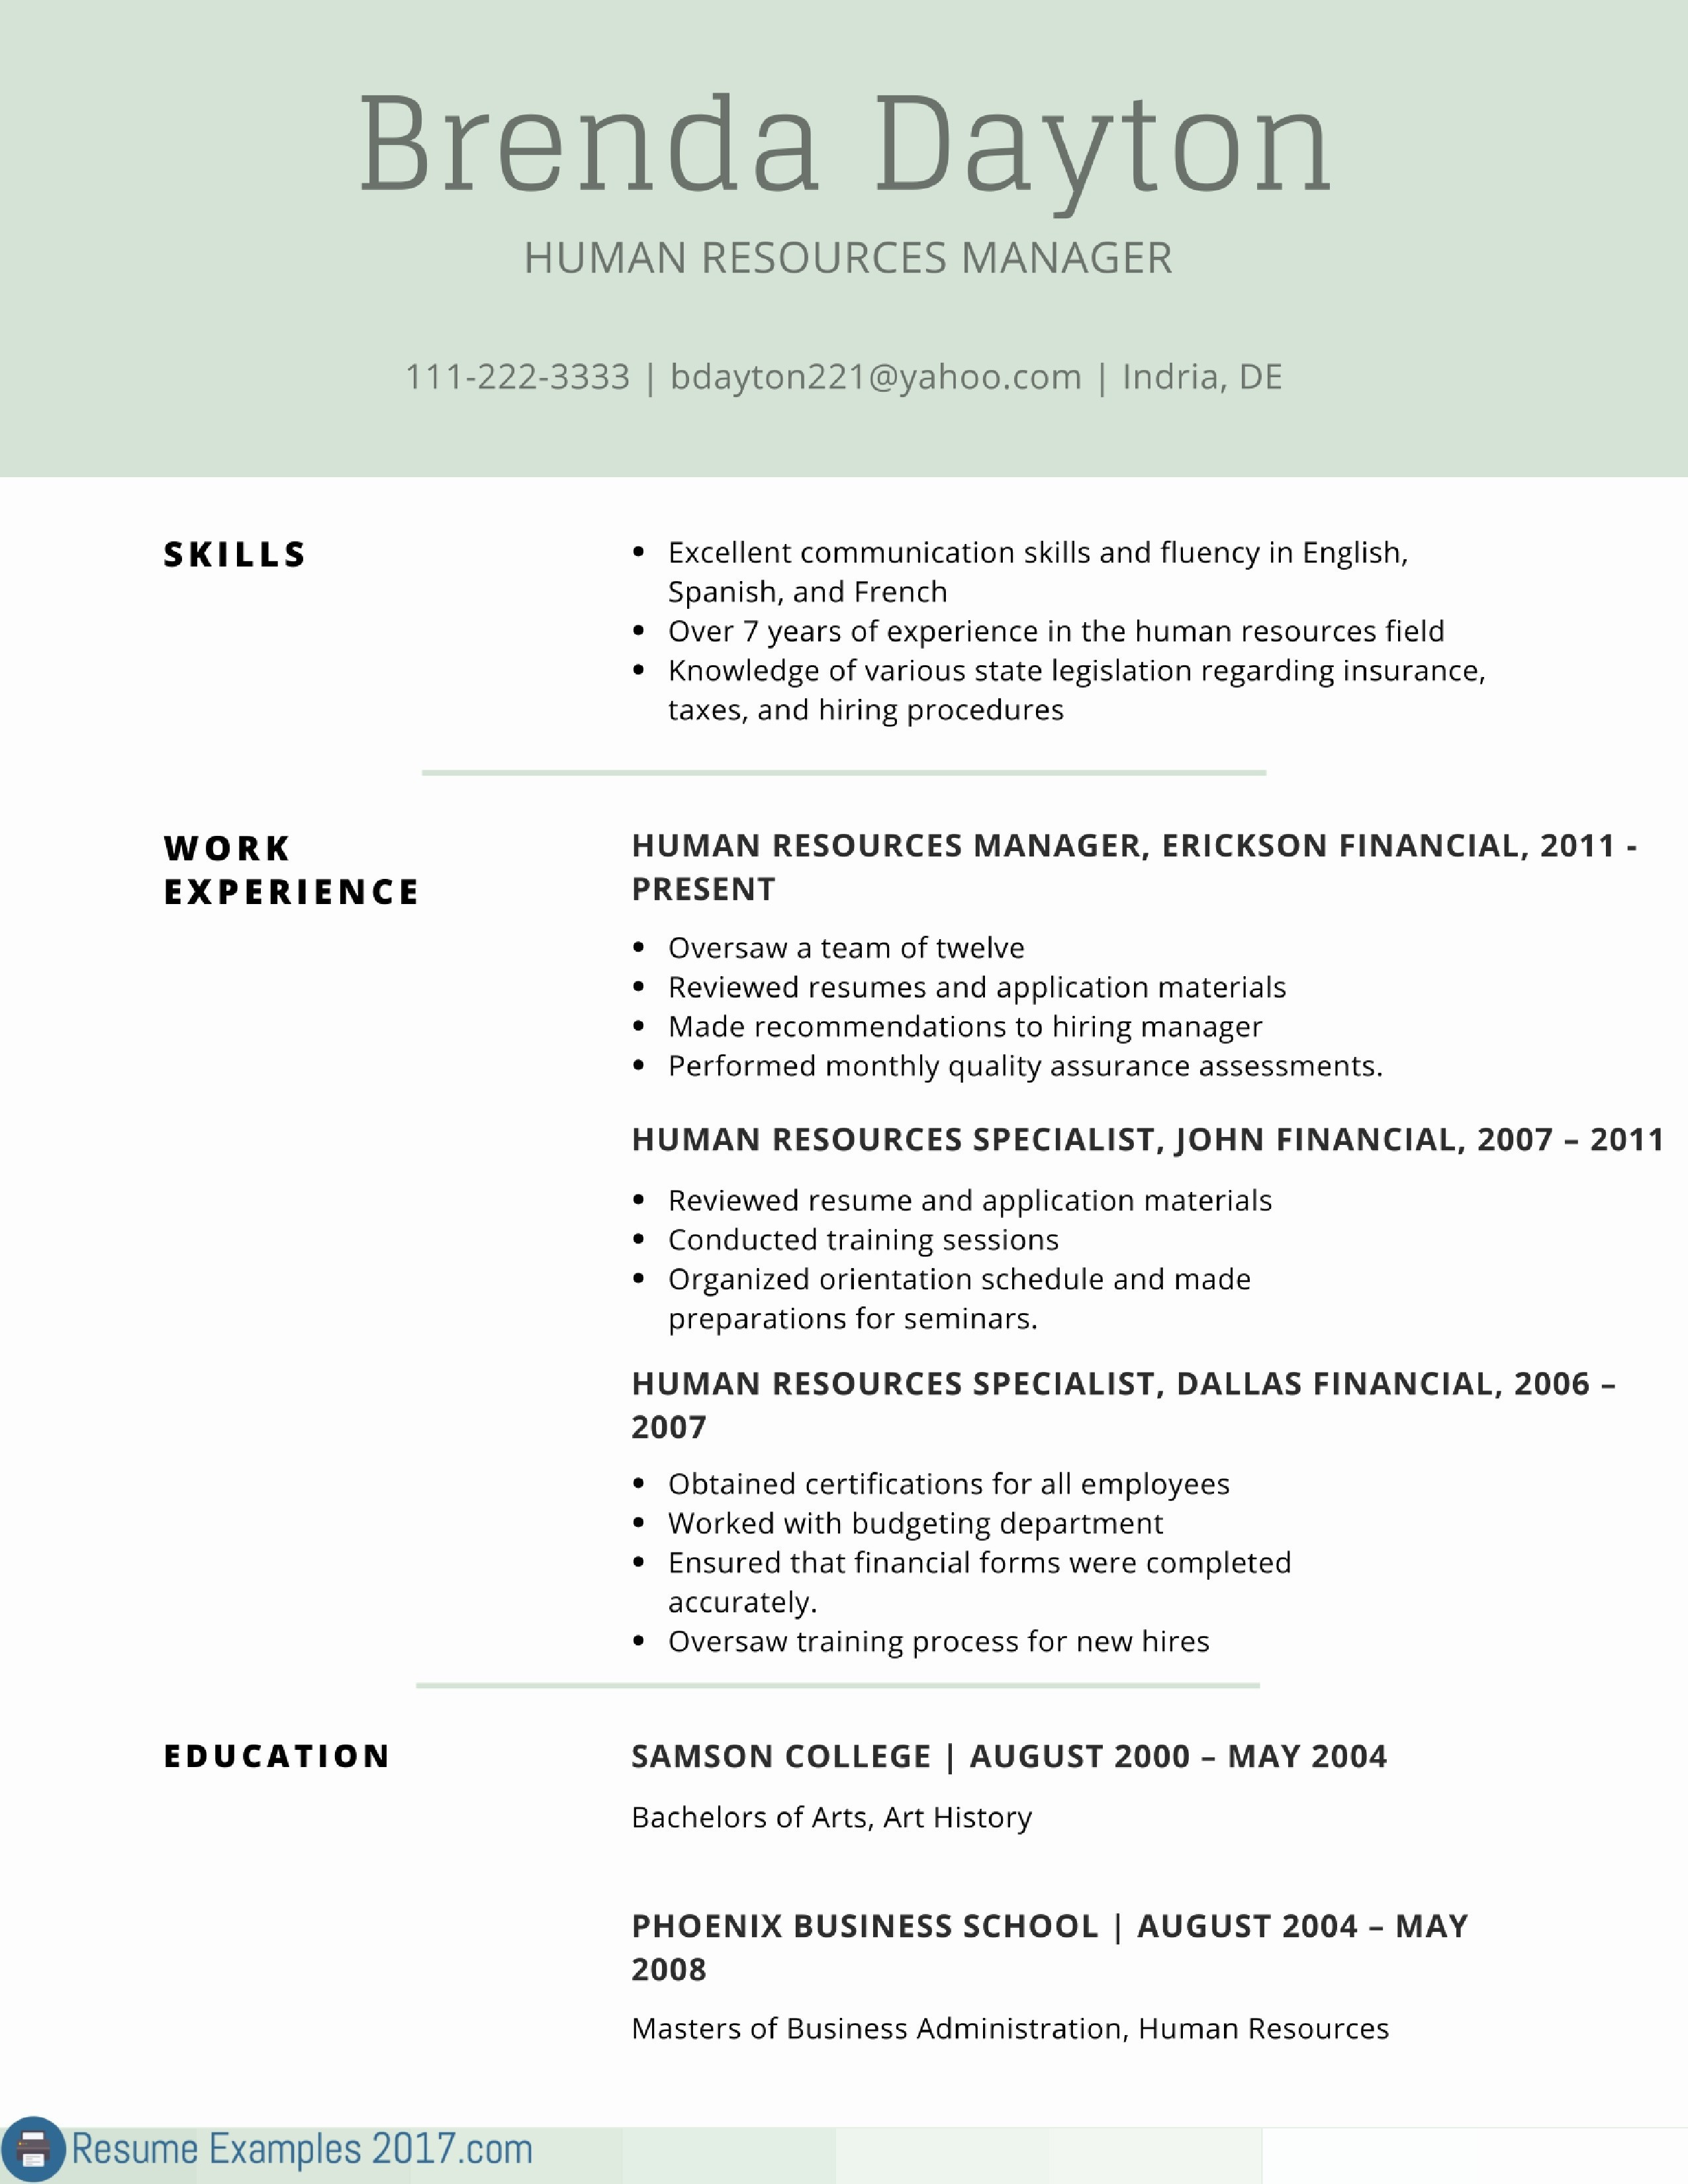 Updated Resume 2018 - Right Resume format 2018 Fresh New Resume Sample Best Resume Cover